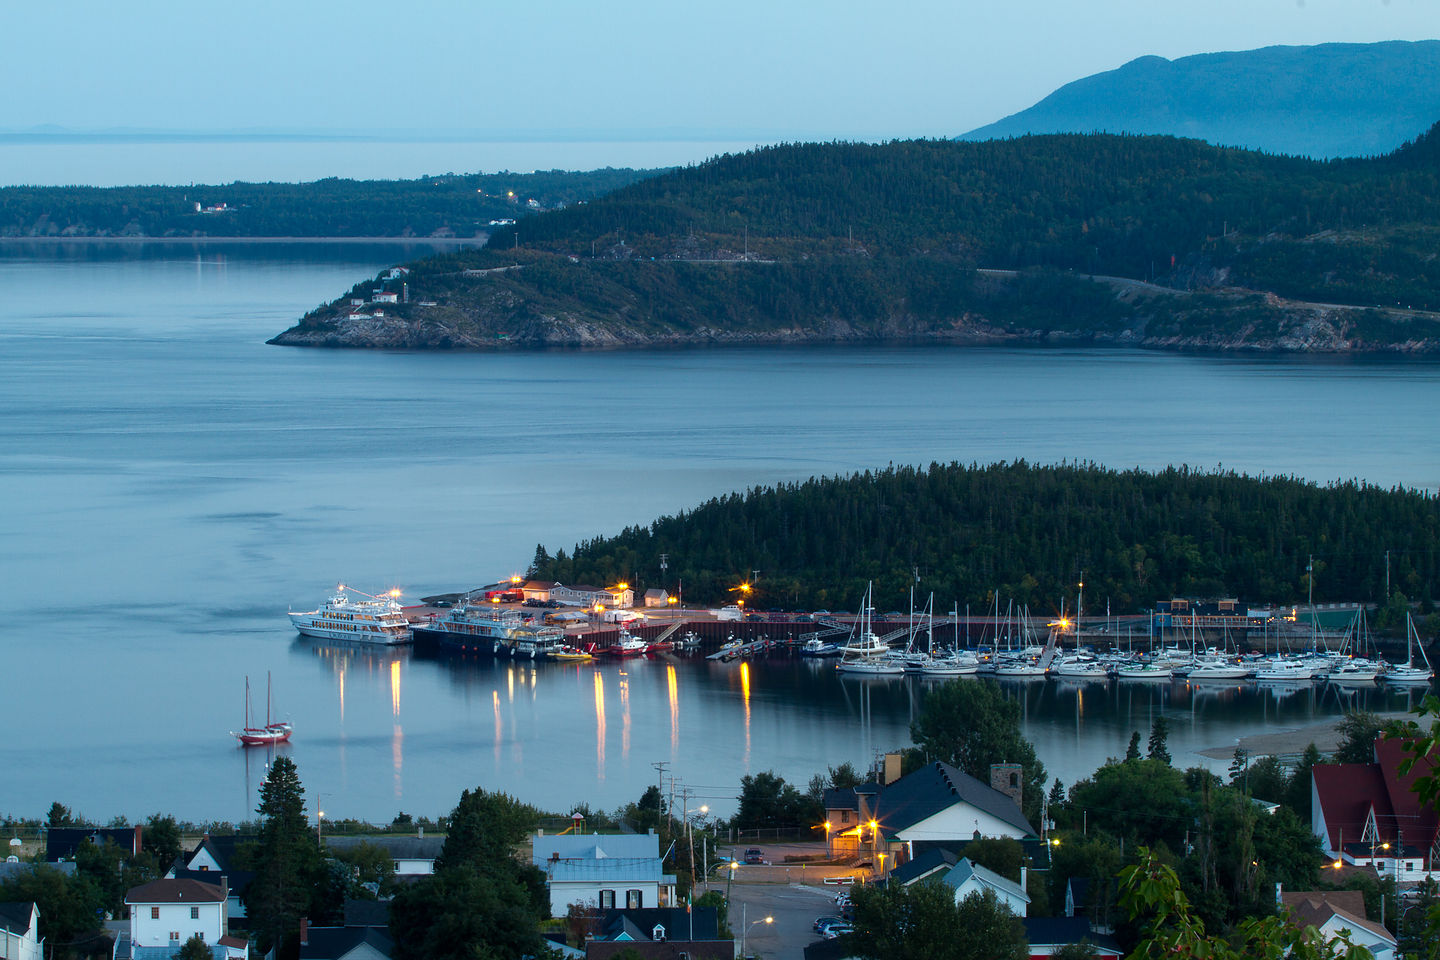 View of Tadoussac Village from Campground - TJG